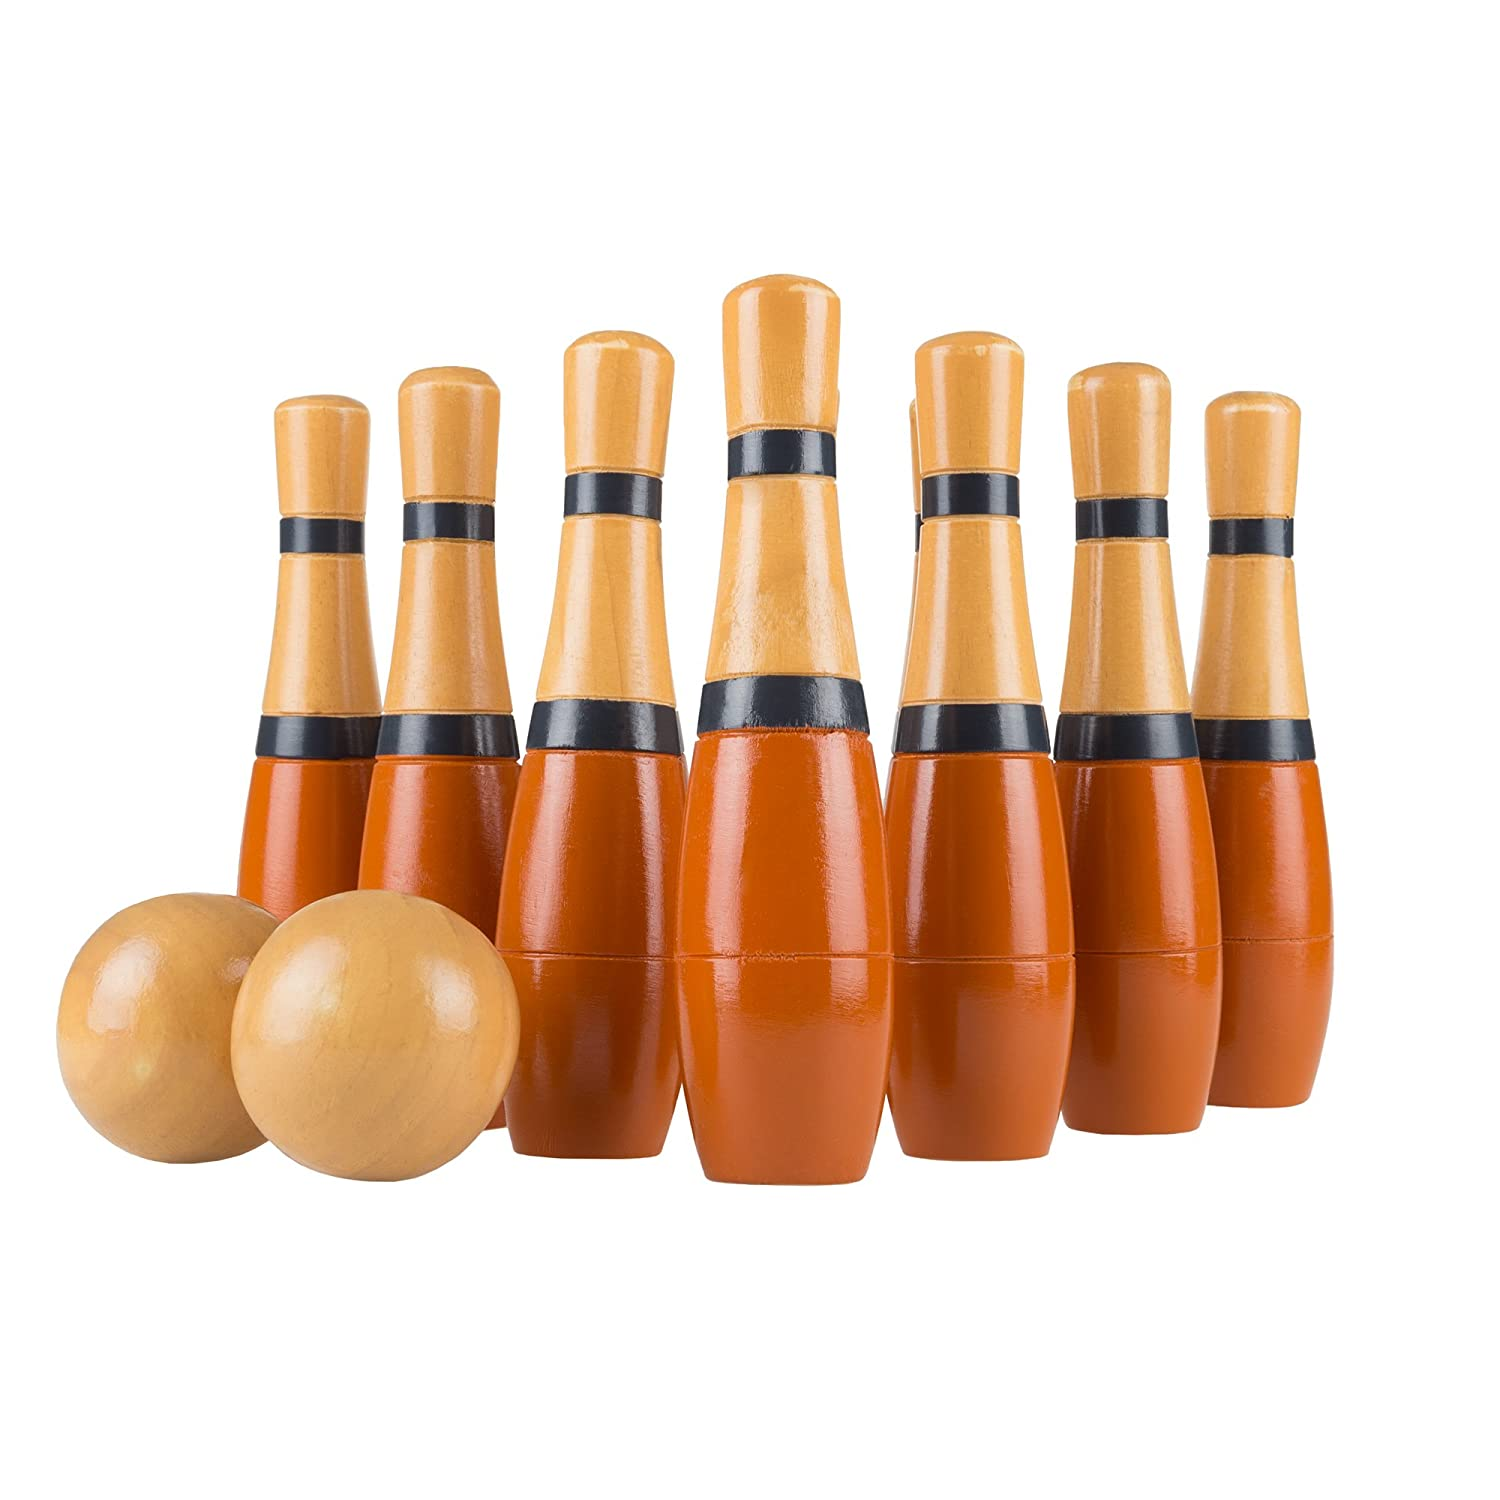 "CDM product Hey! Play! Lawn Bowling, 8"" Tall Wooden Lawn Game, Indoor & Outdoor Toy, Adults & Kids, Orange/Gray big image"